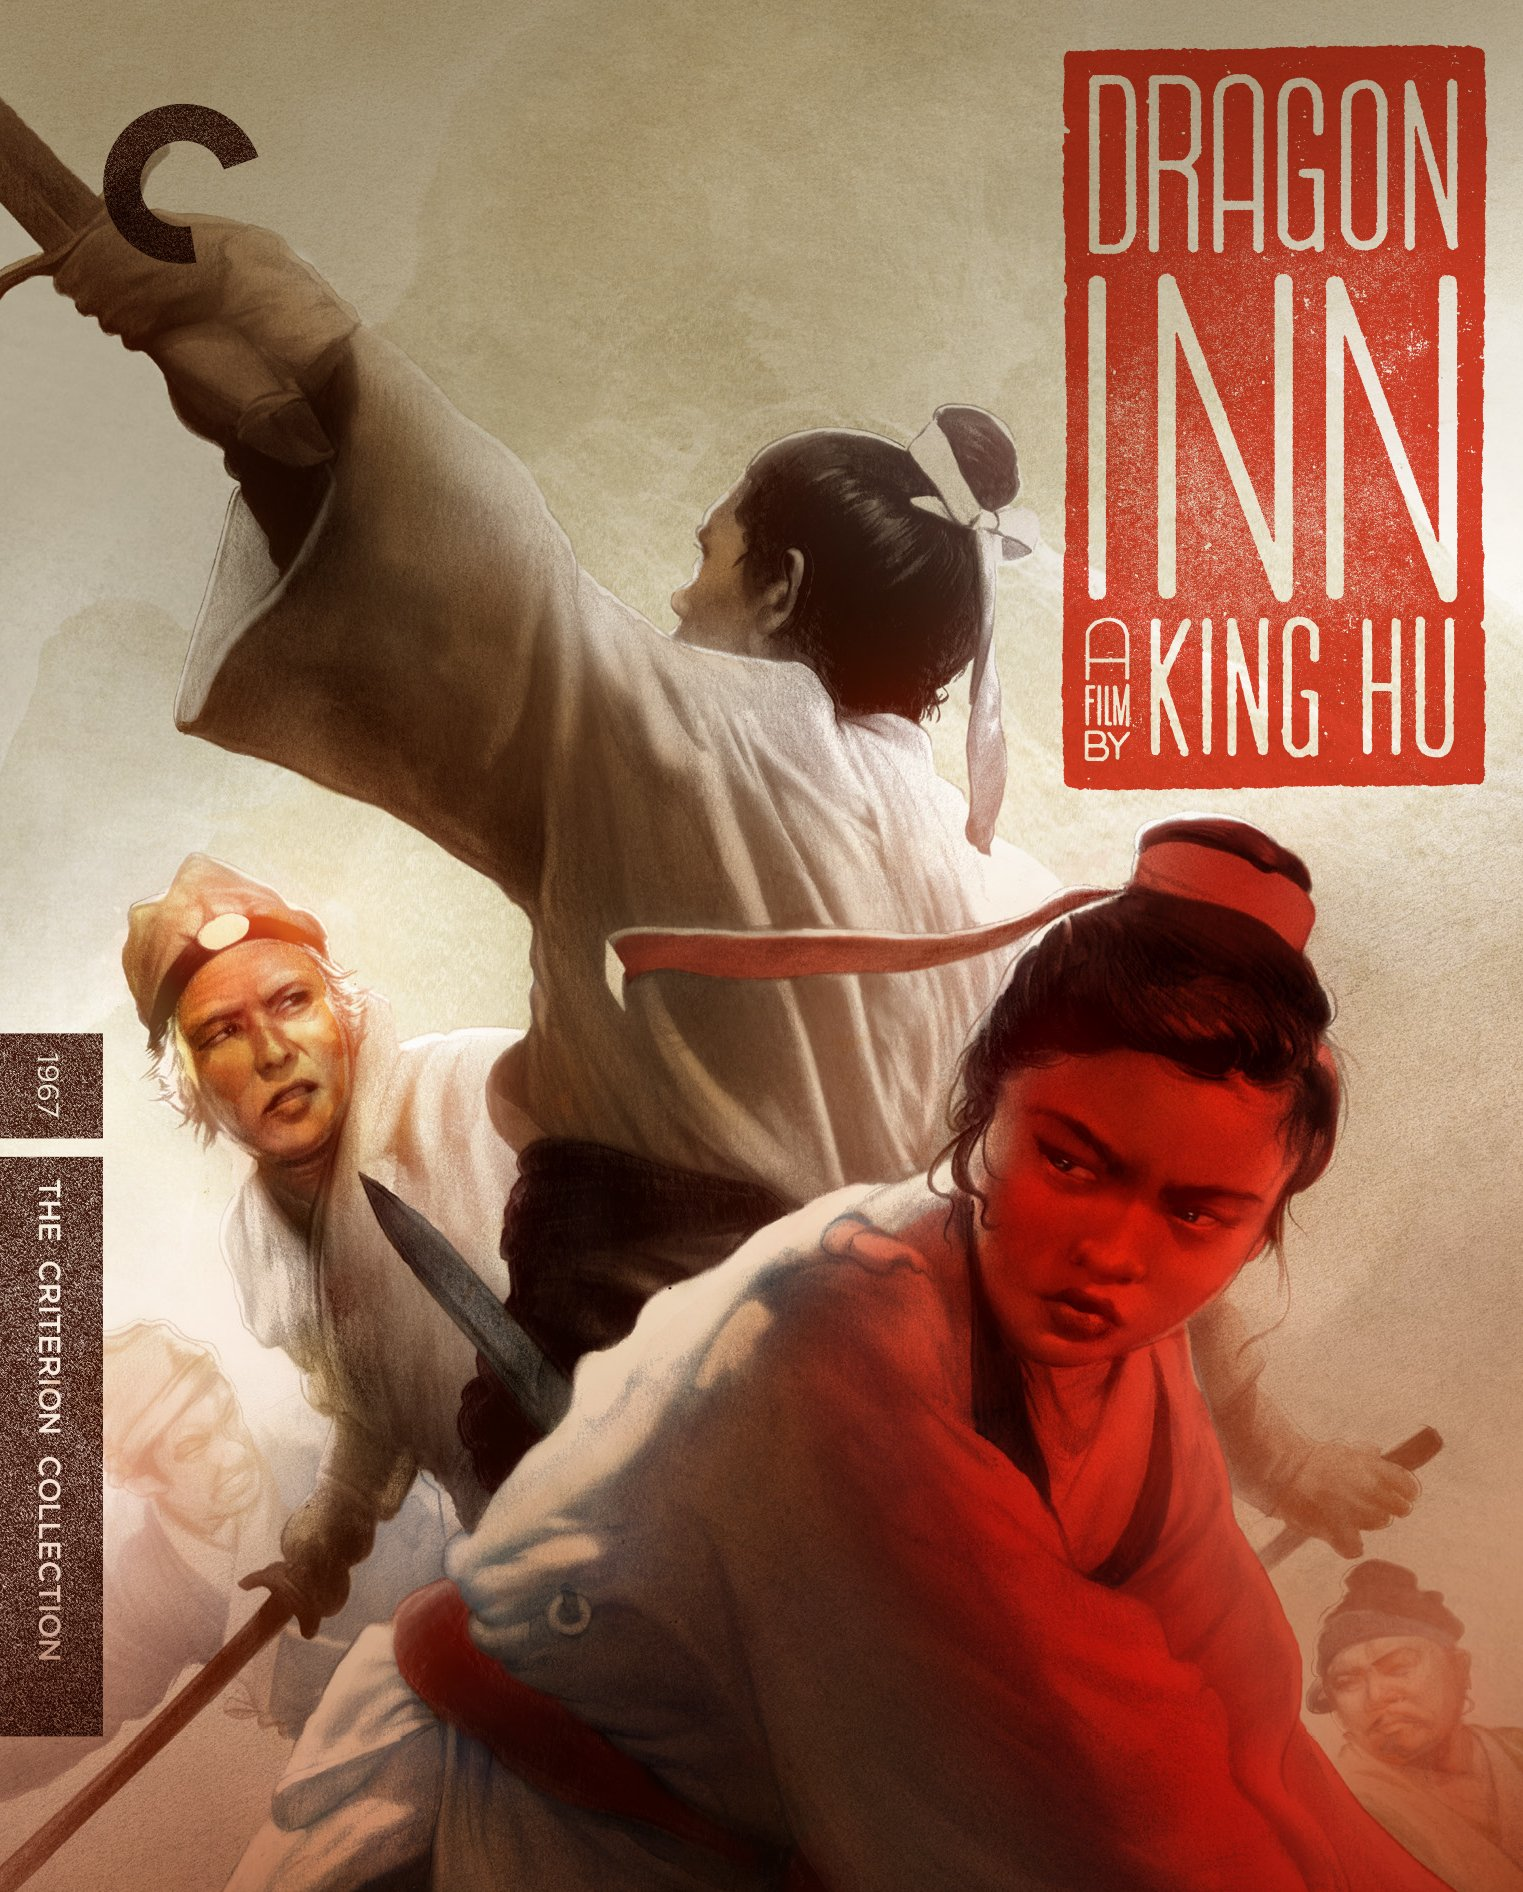 Blu-ray : Dragon Inn (criterion Collection) (Special Edition, Restored, 4K Mastering, Widescreen, Subtitled)